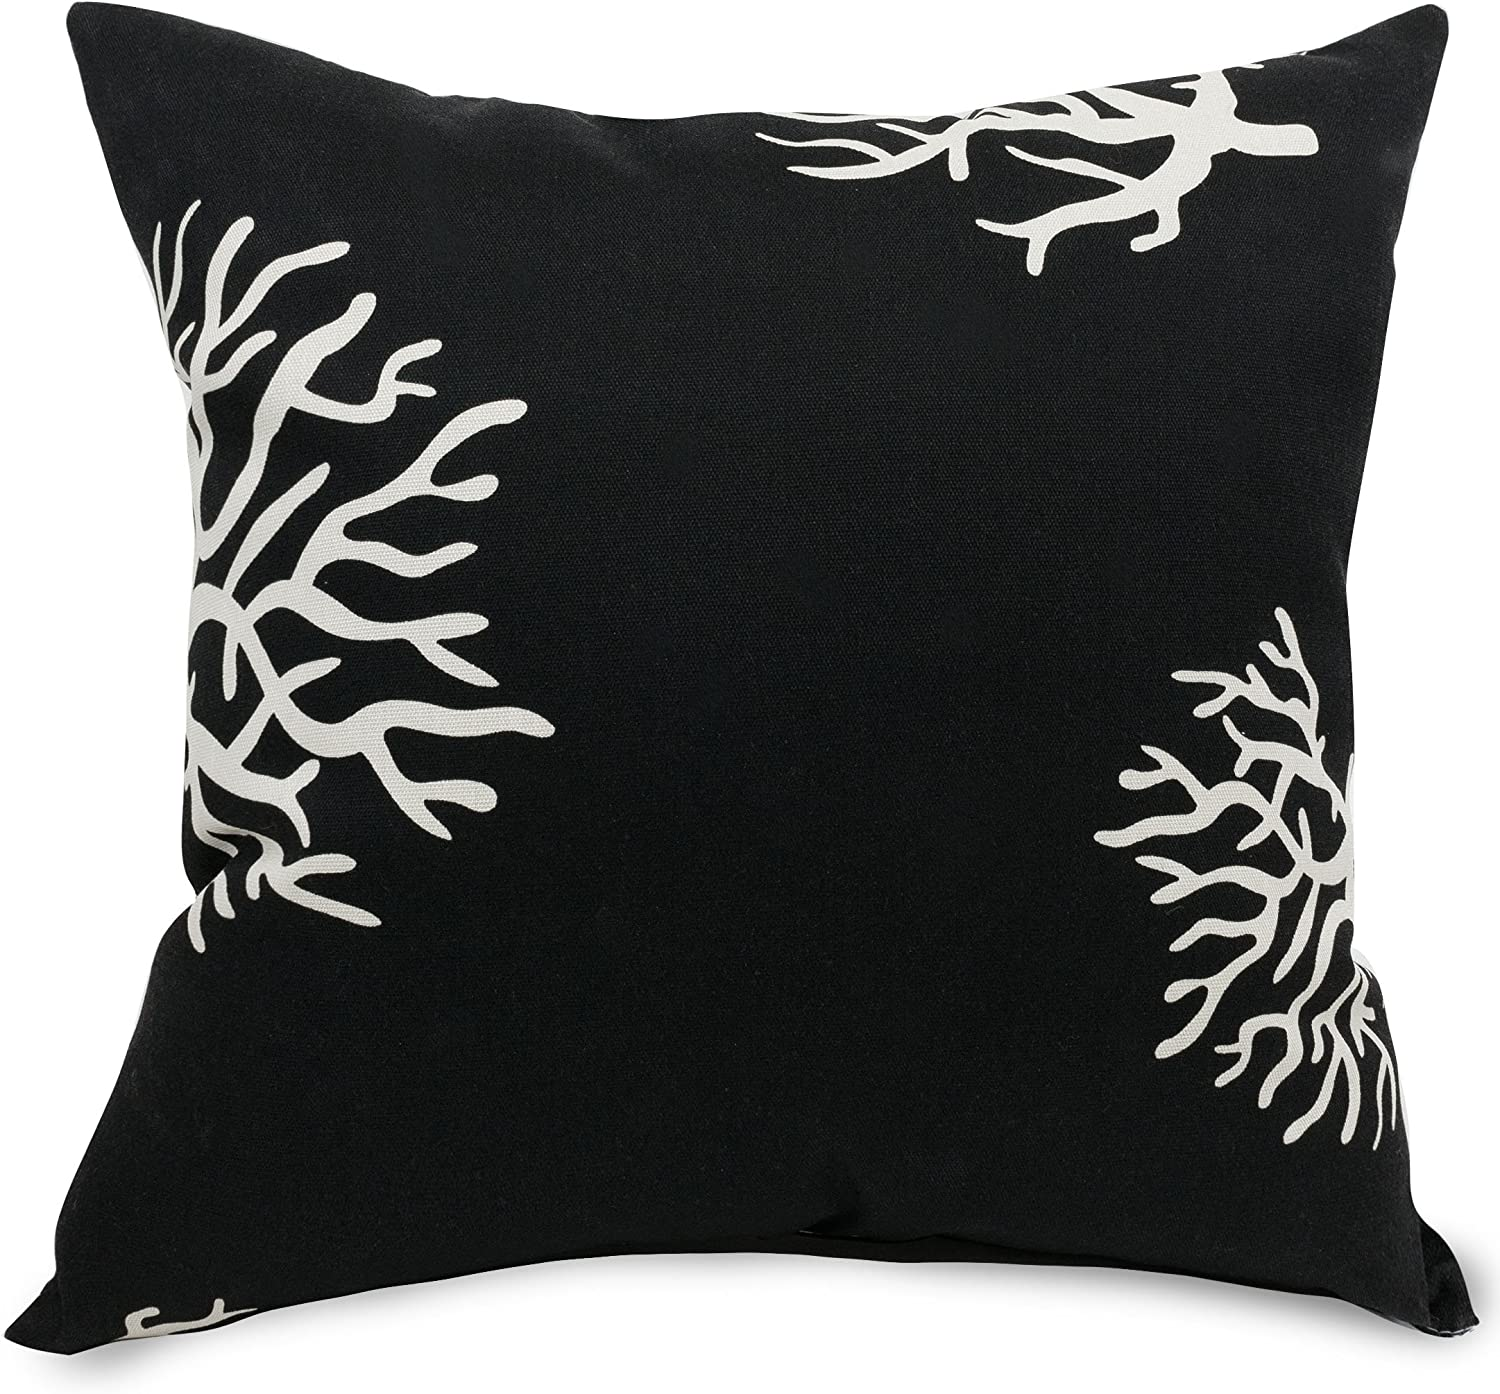 Majestic Home Goods Black Coral Extra Large Pillow